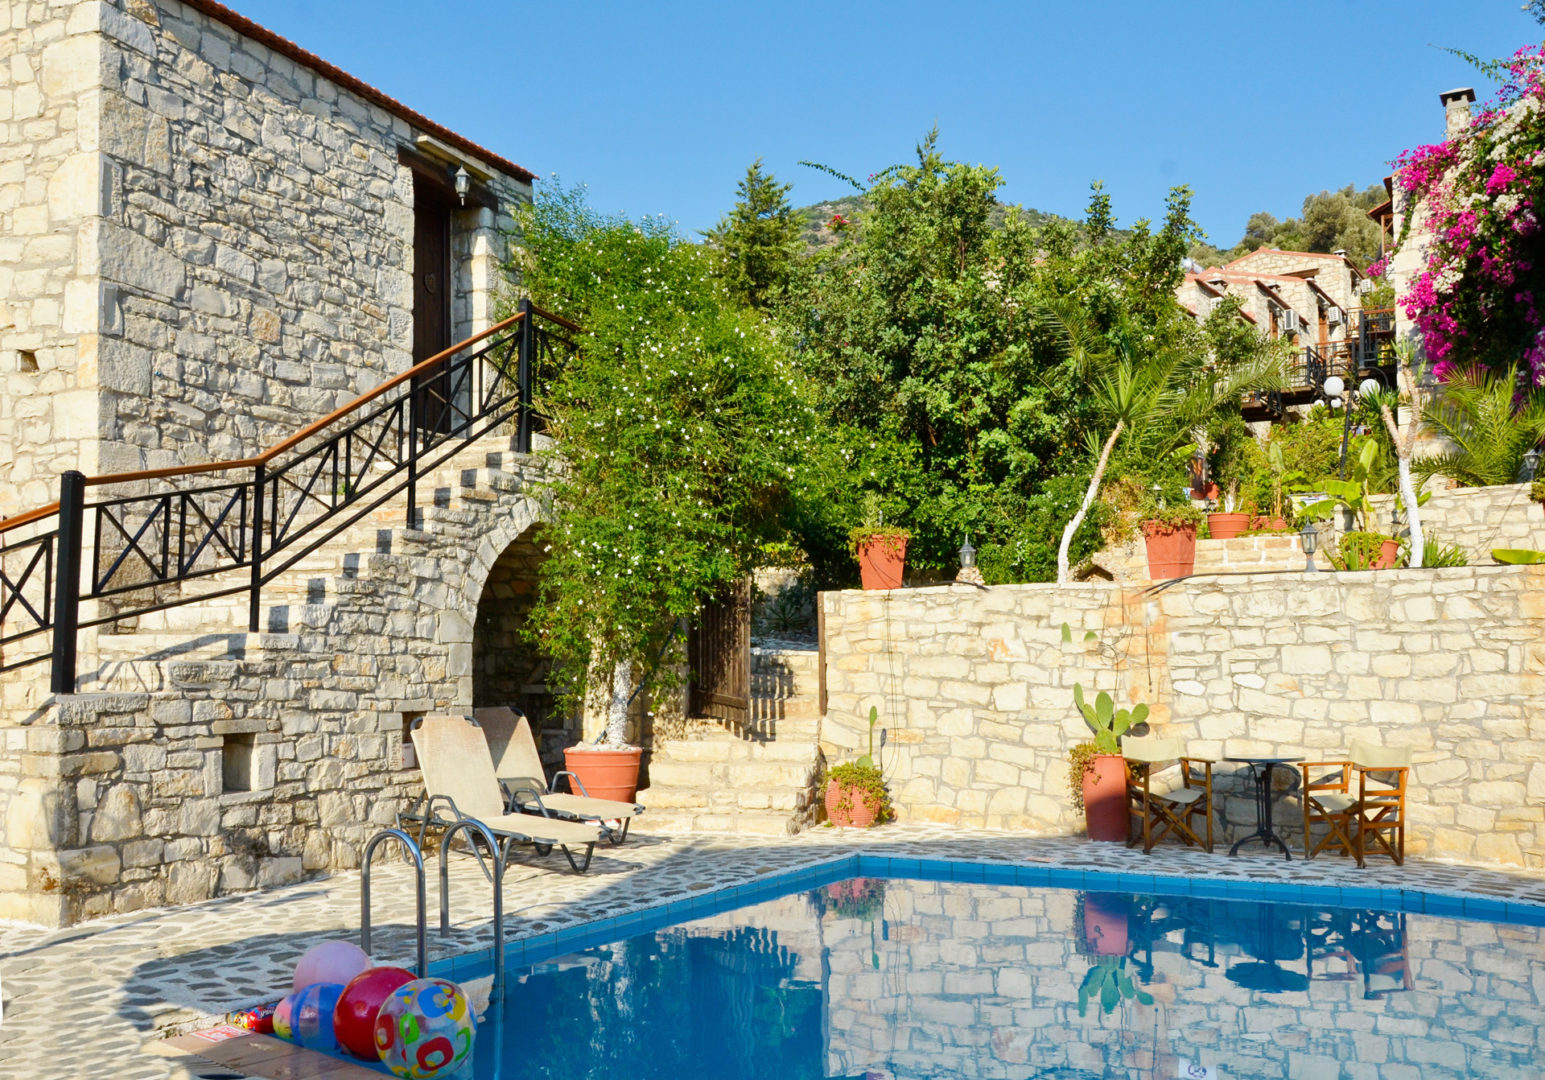 Hotel in Bali Crete - Stone Village - Large Pool 4